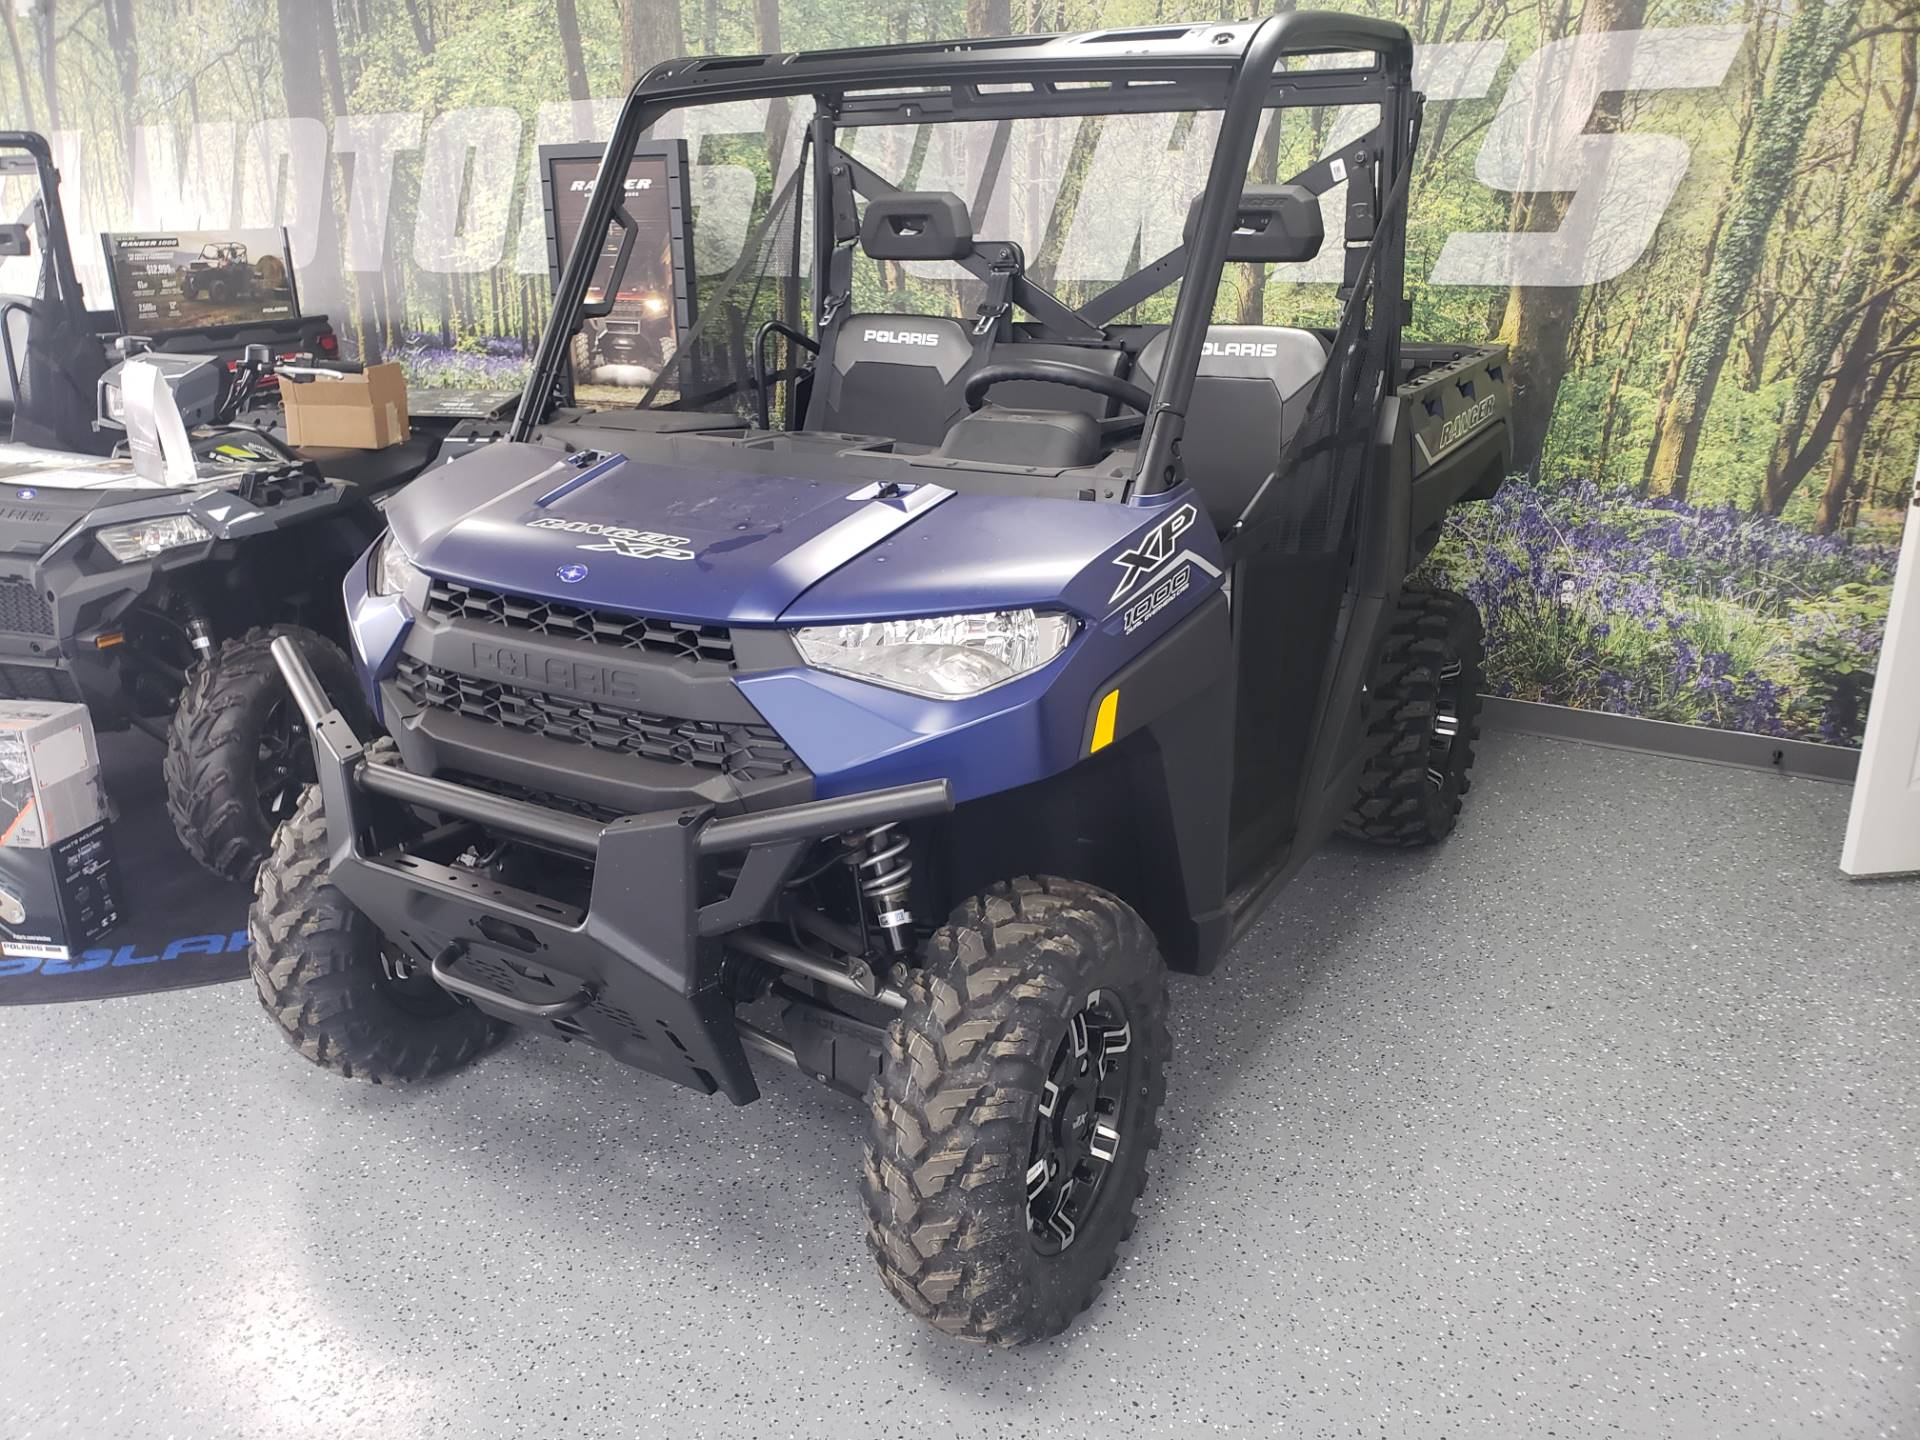 2021 Polaris Ranger XP 1000 Premium in Tecumseh, Michigan - Photo 1